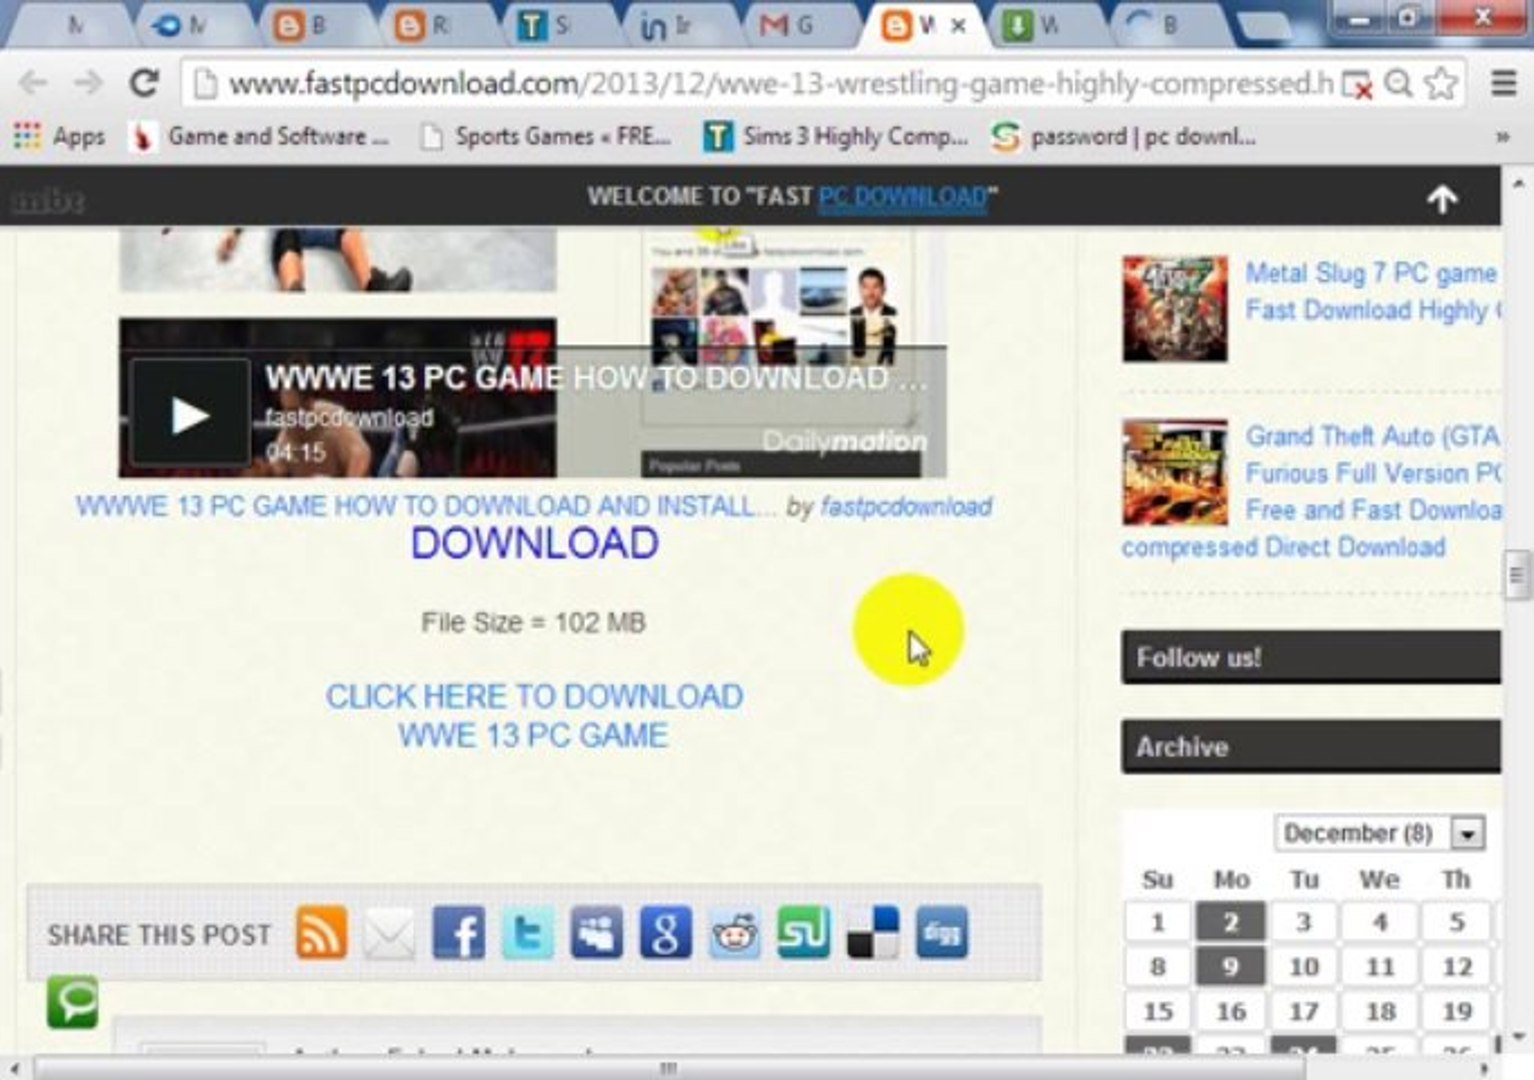 how to download Games From www fastpcdownload com